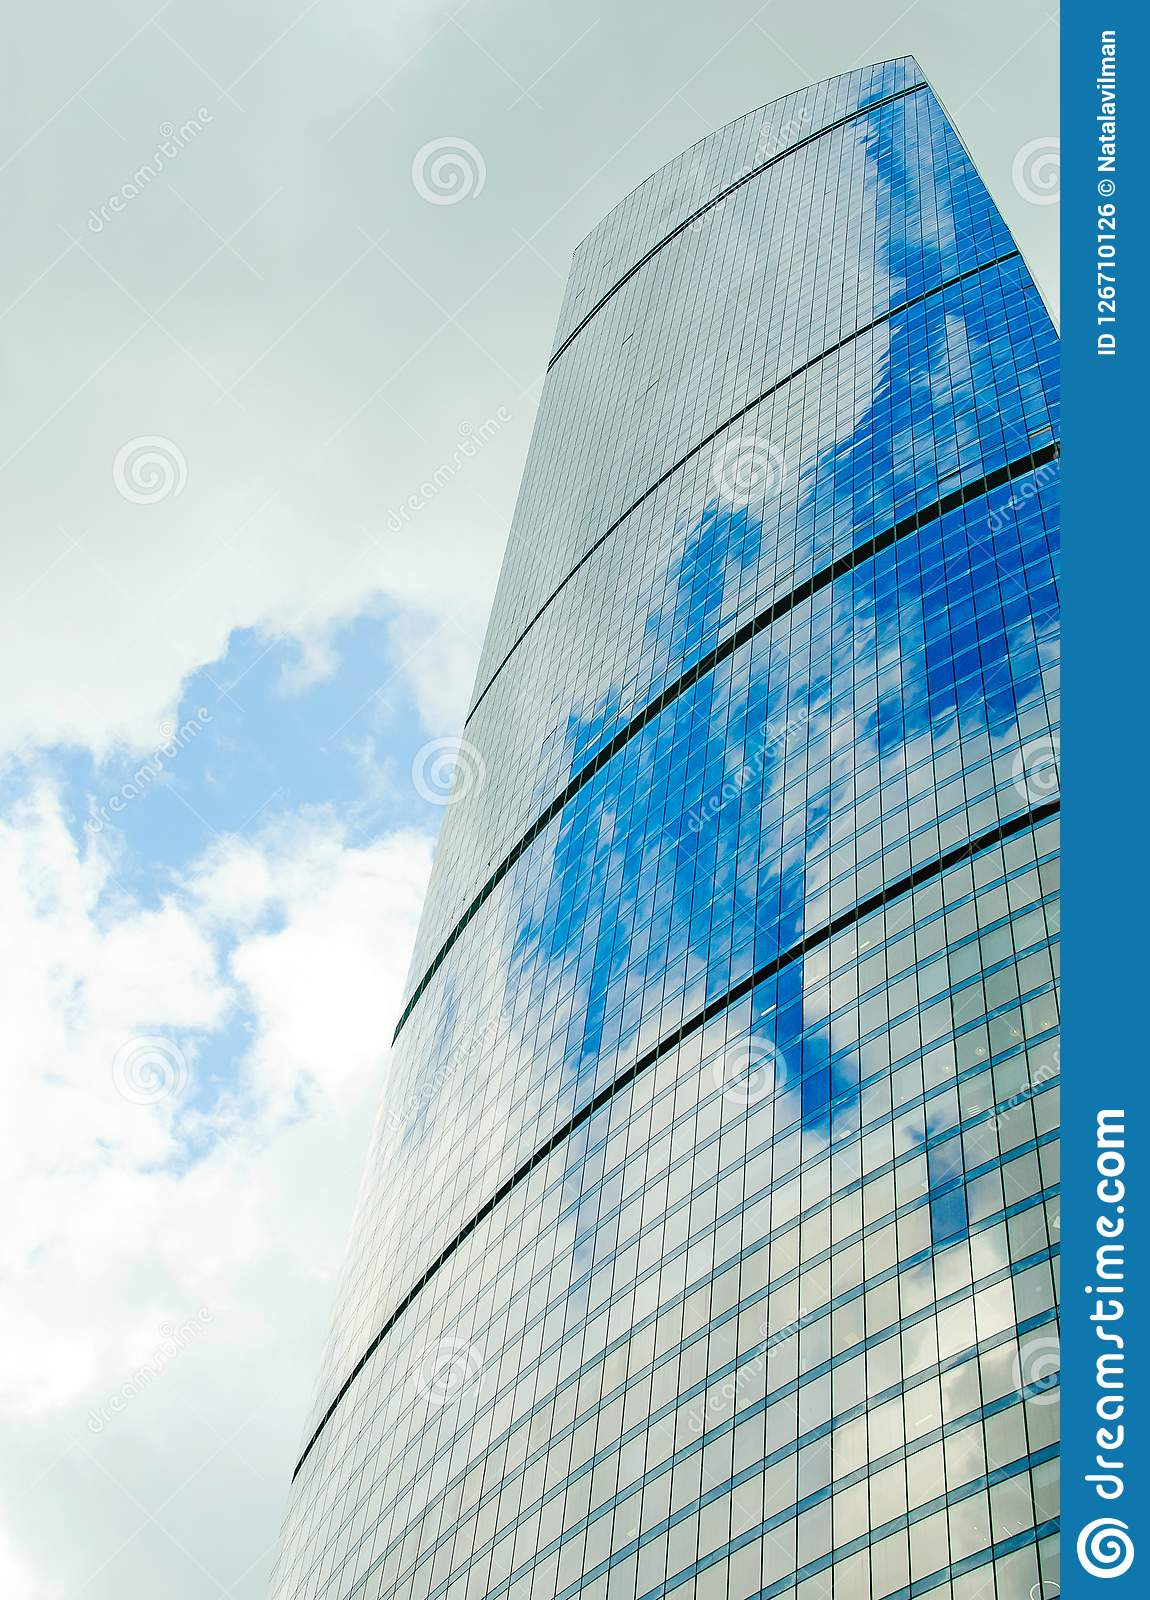 Wall of a skyscraper with mirror glass against a sky with clouds. Vertical photography.